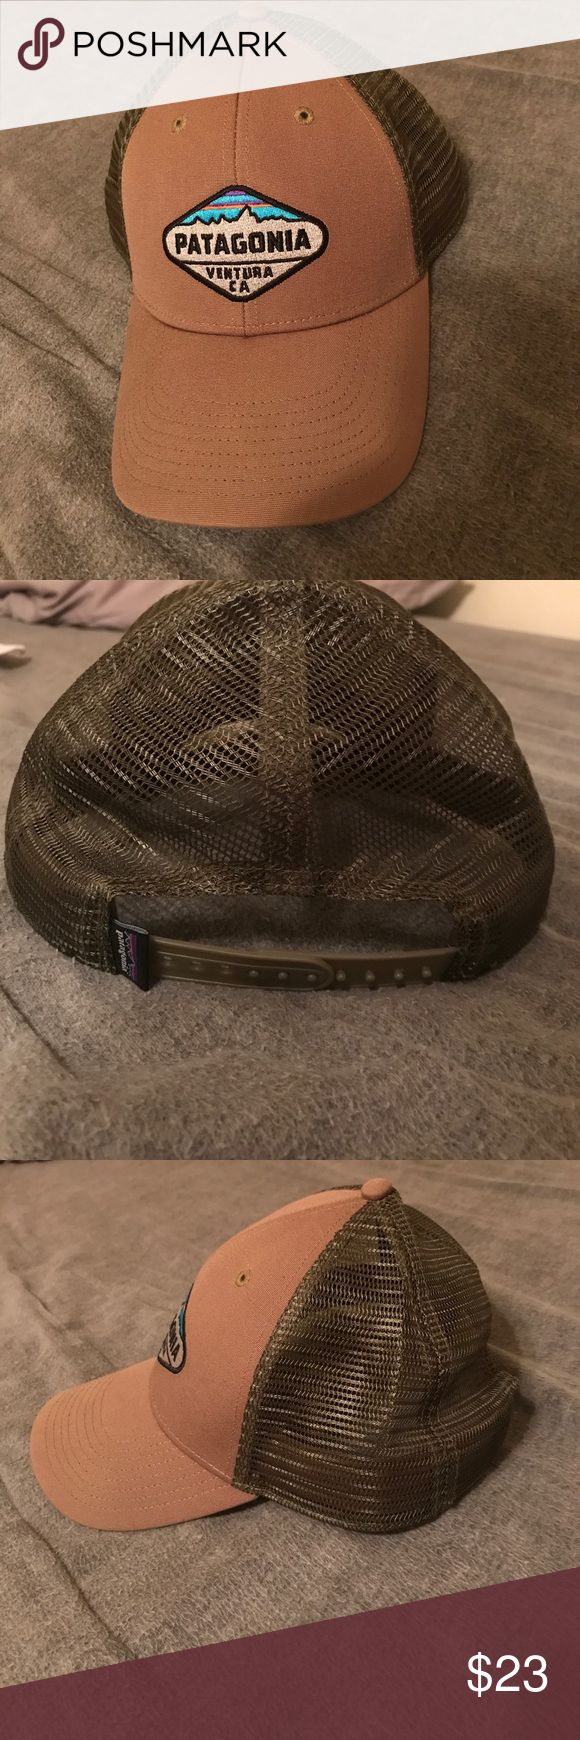 Patagonia Ventura Hat SnapBack Patagonia SnapBack trucker hat. Tan with army green mesh with adjustable SnapBack. Like new condition. Patagonia Accessories Hats